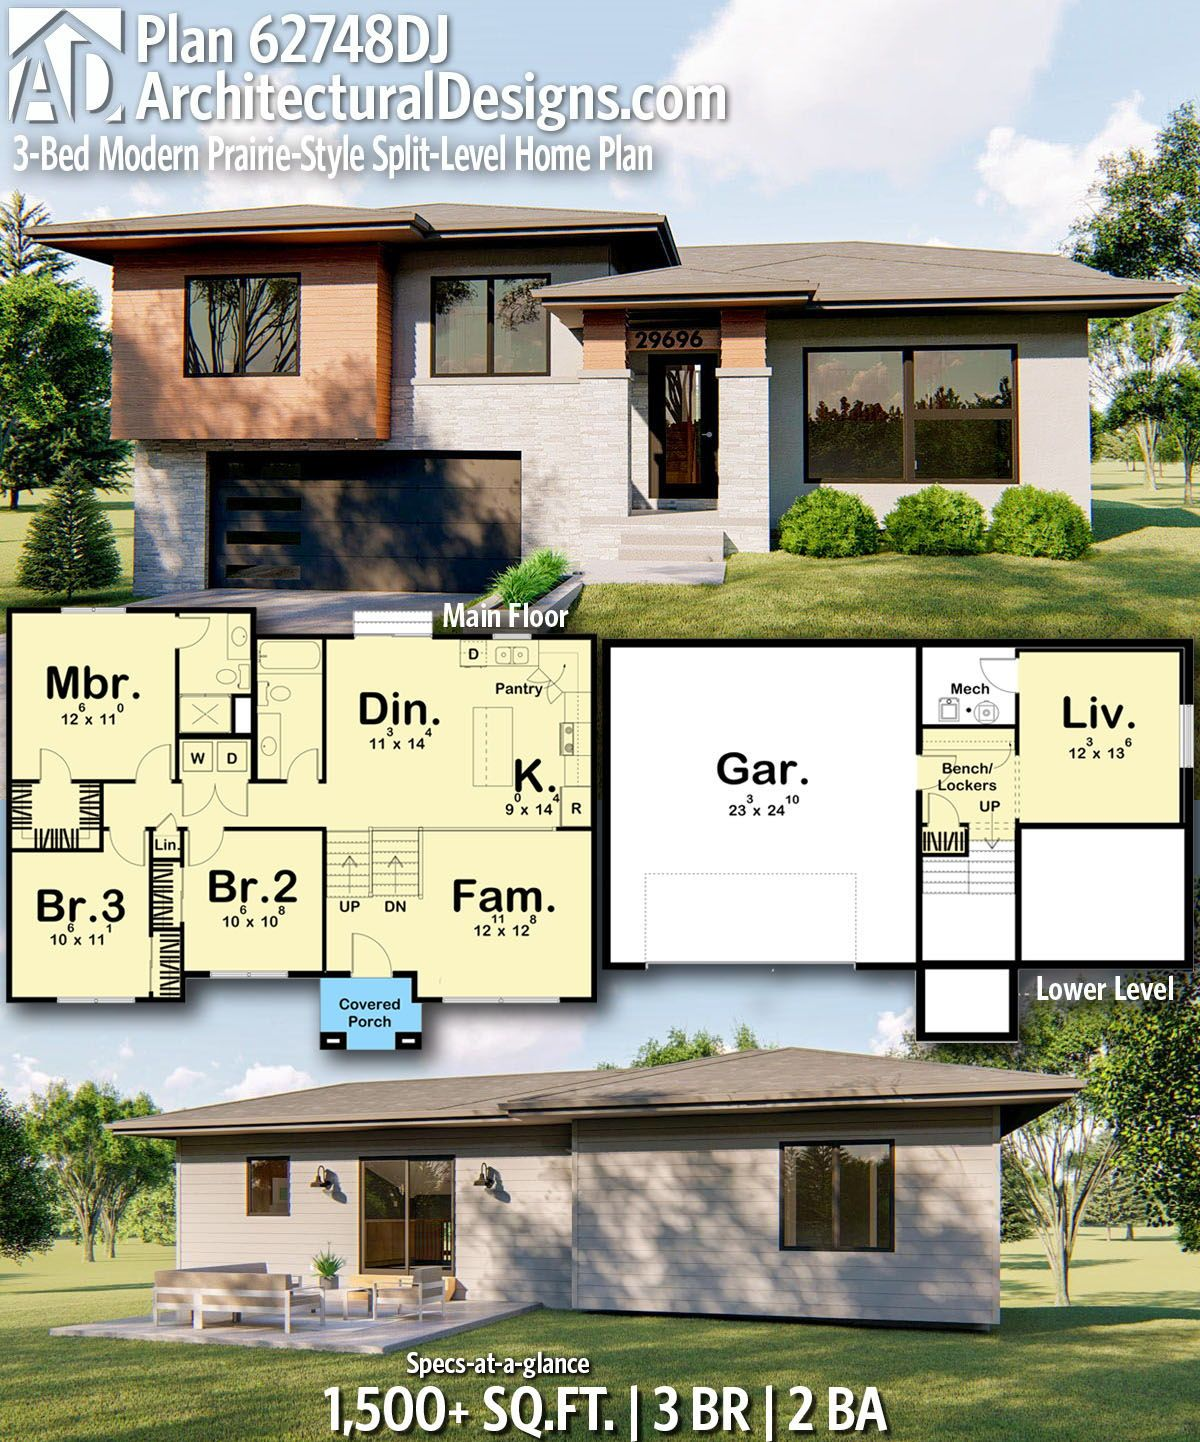 Plan 62748dj 3 Bed Modern Prairie Style Split Level Home Plan House Plans Building Plans House House Design